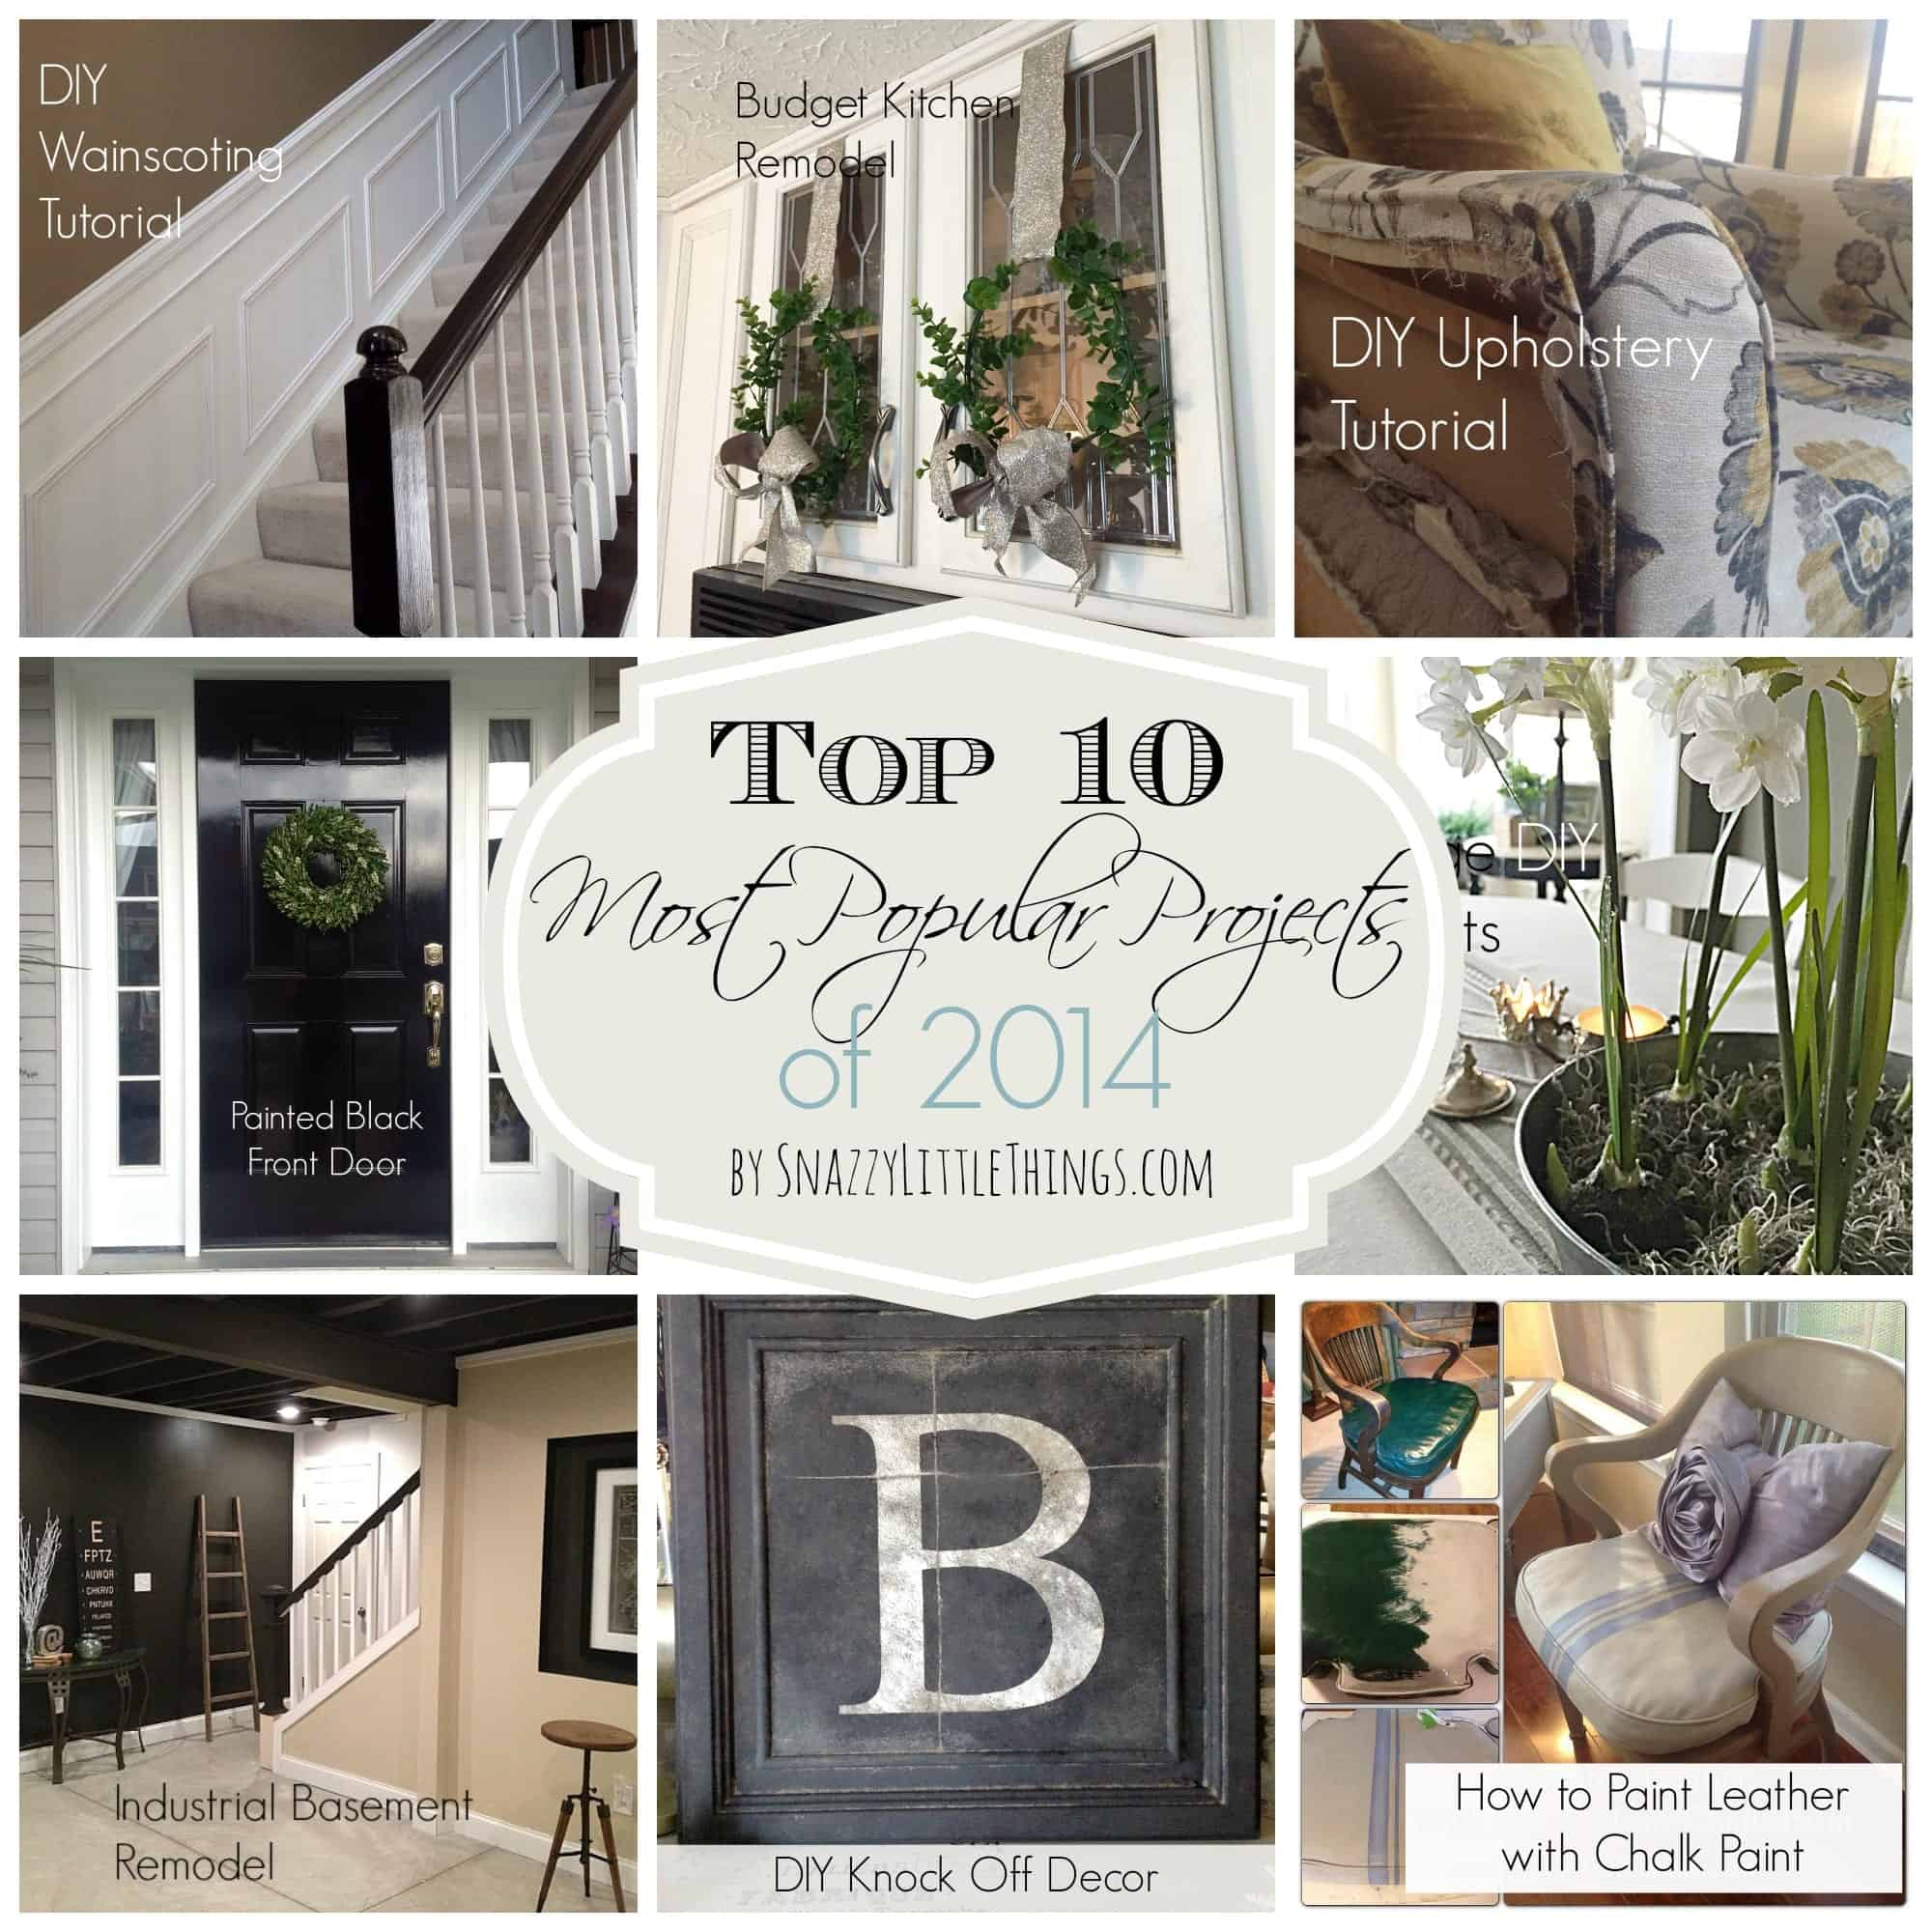 Top 10 DIY Projects 2014